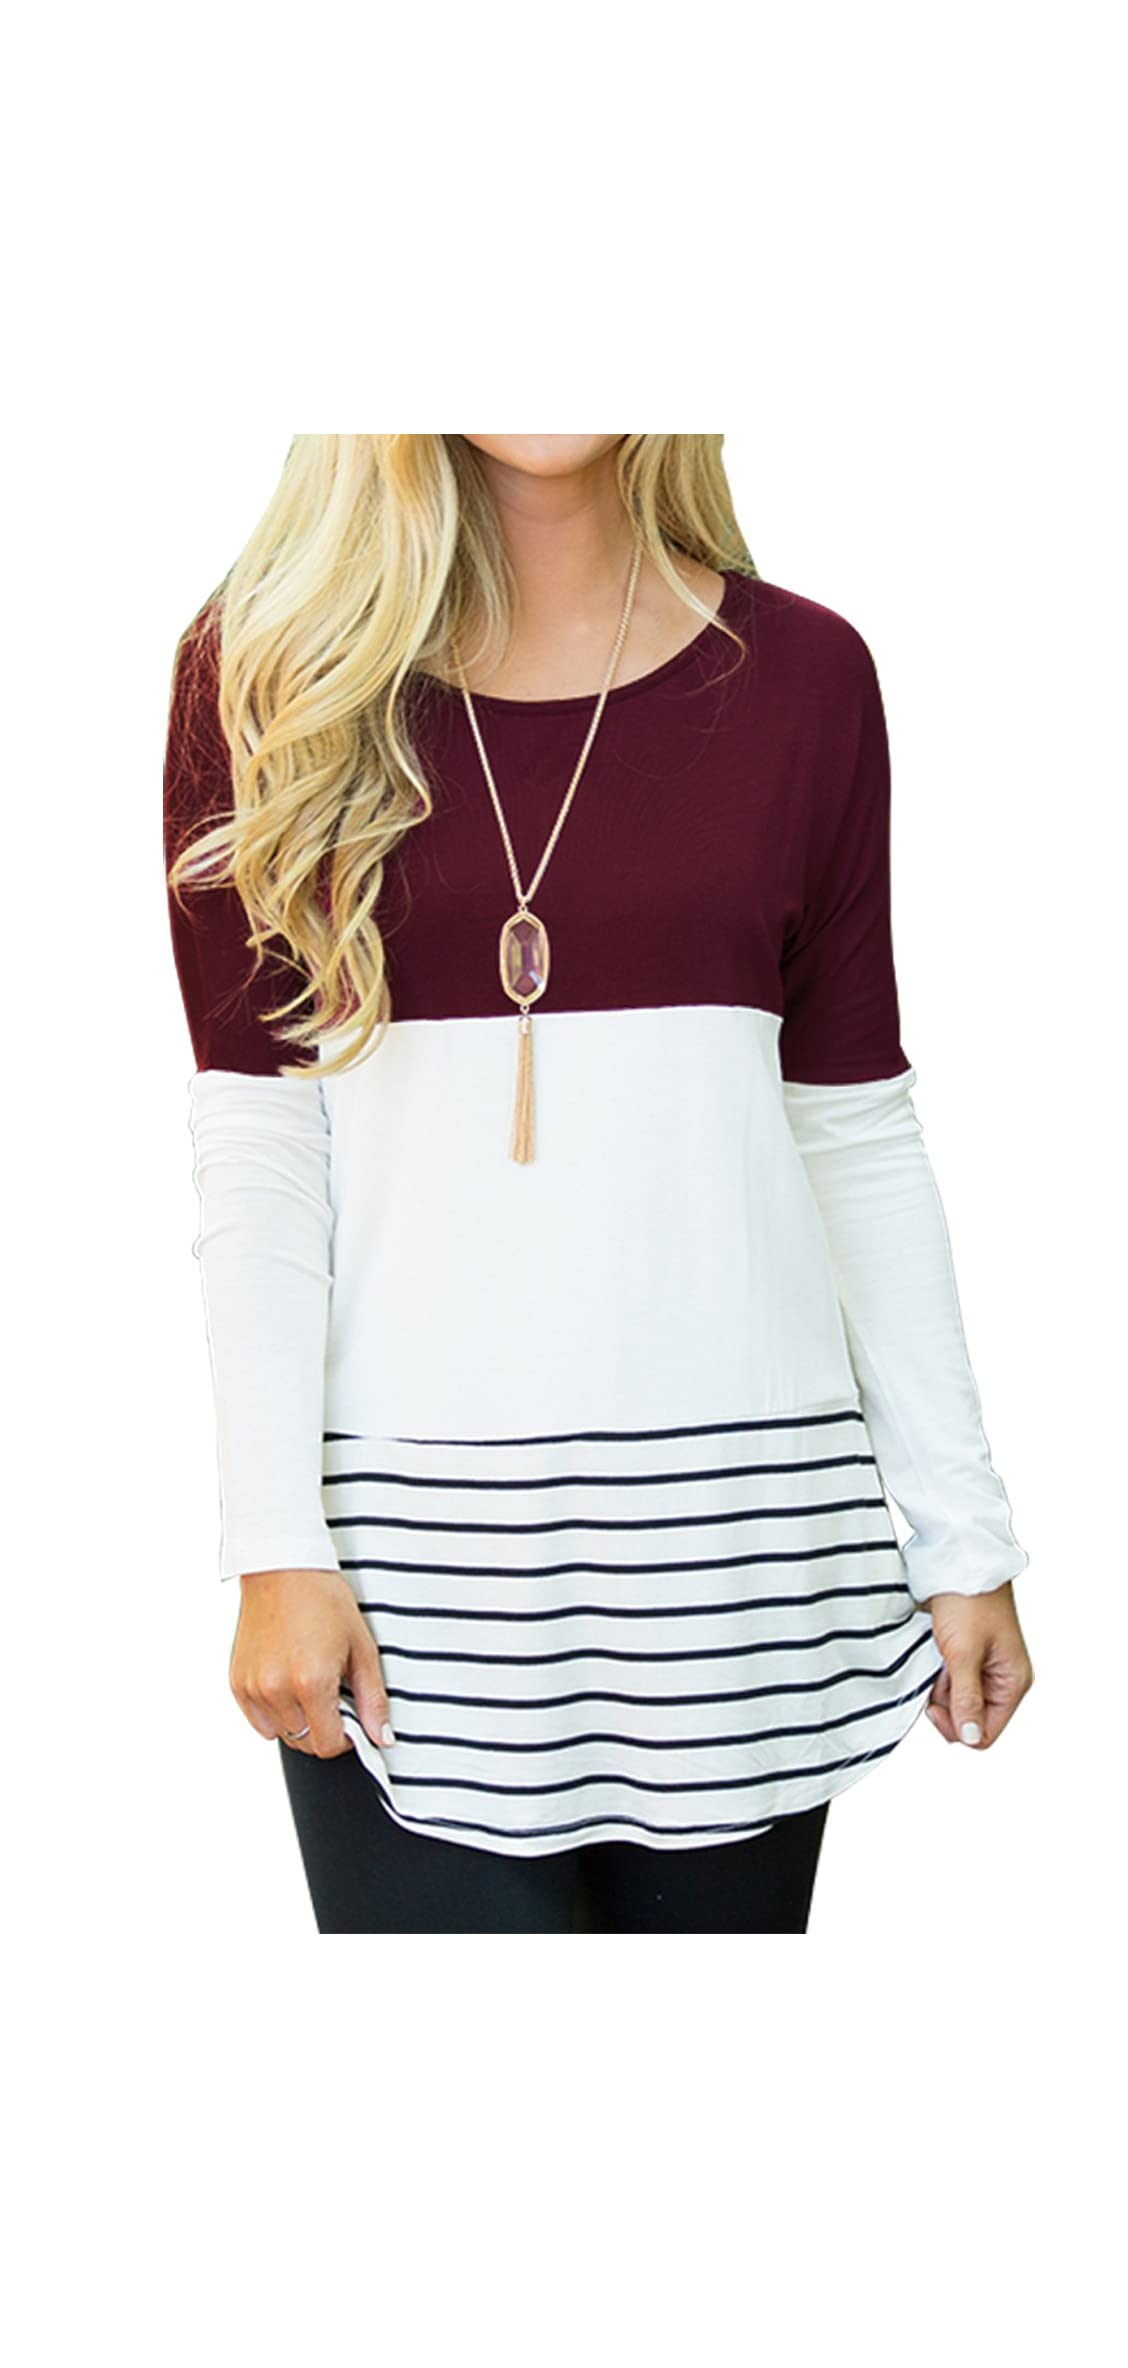 Women's Casual Color Block Lace Inset Long Sleeve T Tops